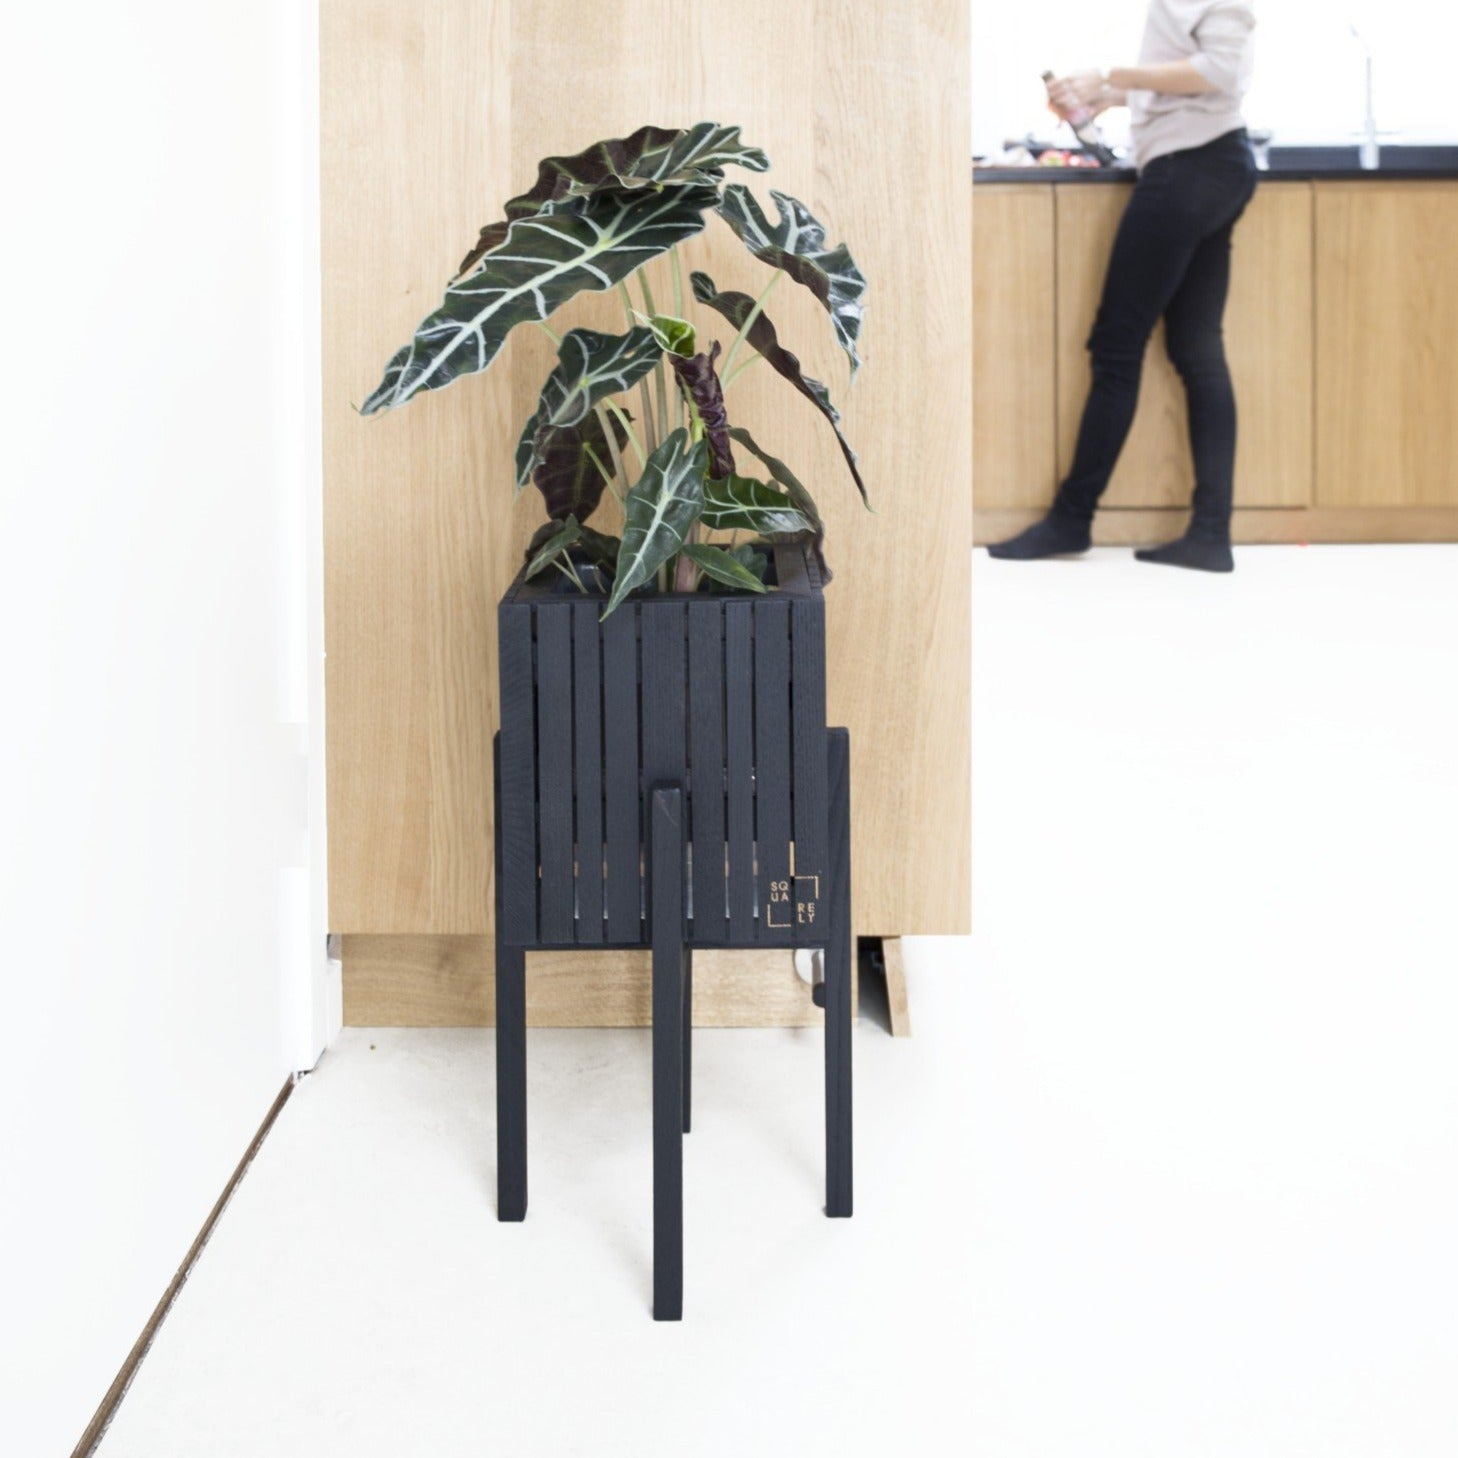 """GrowOn + StandOn"" product combination in black ash colour, black wood design planter with detachable legs shown in a home setting"